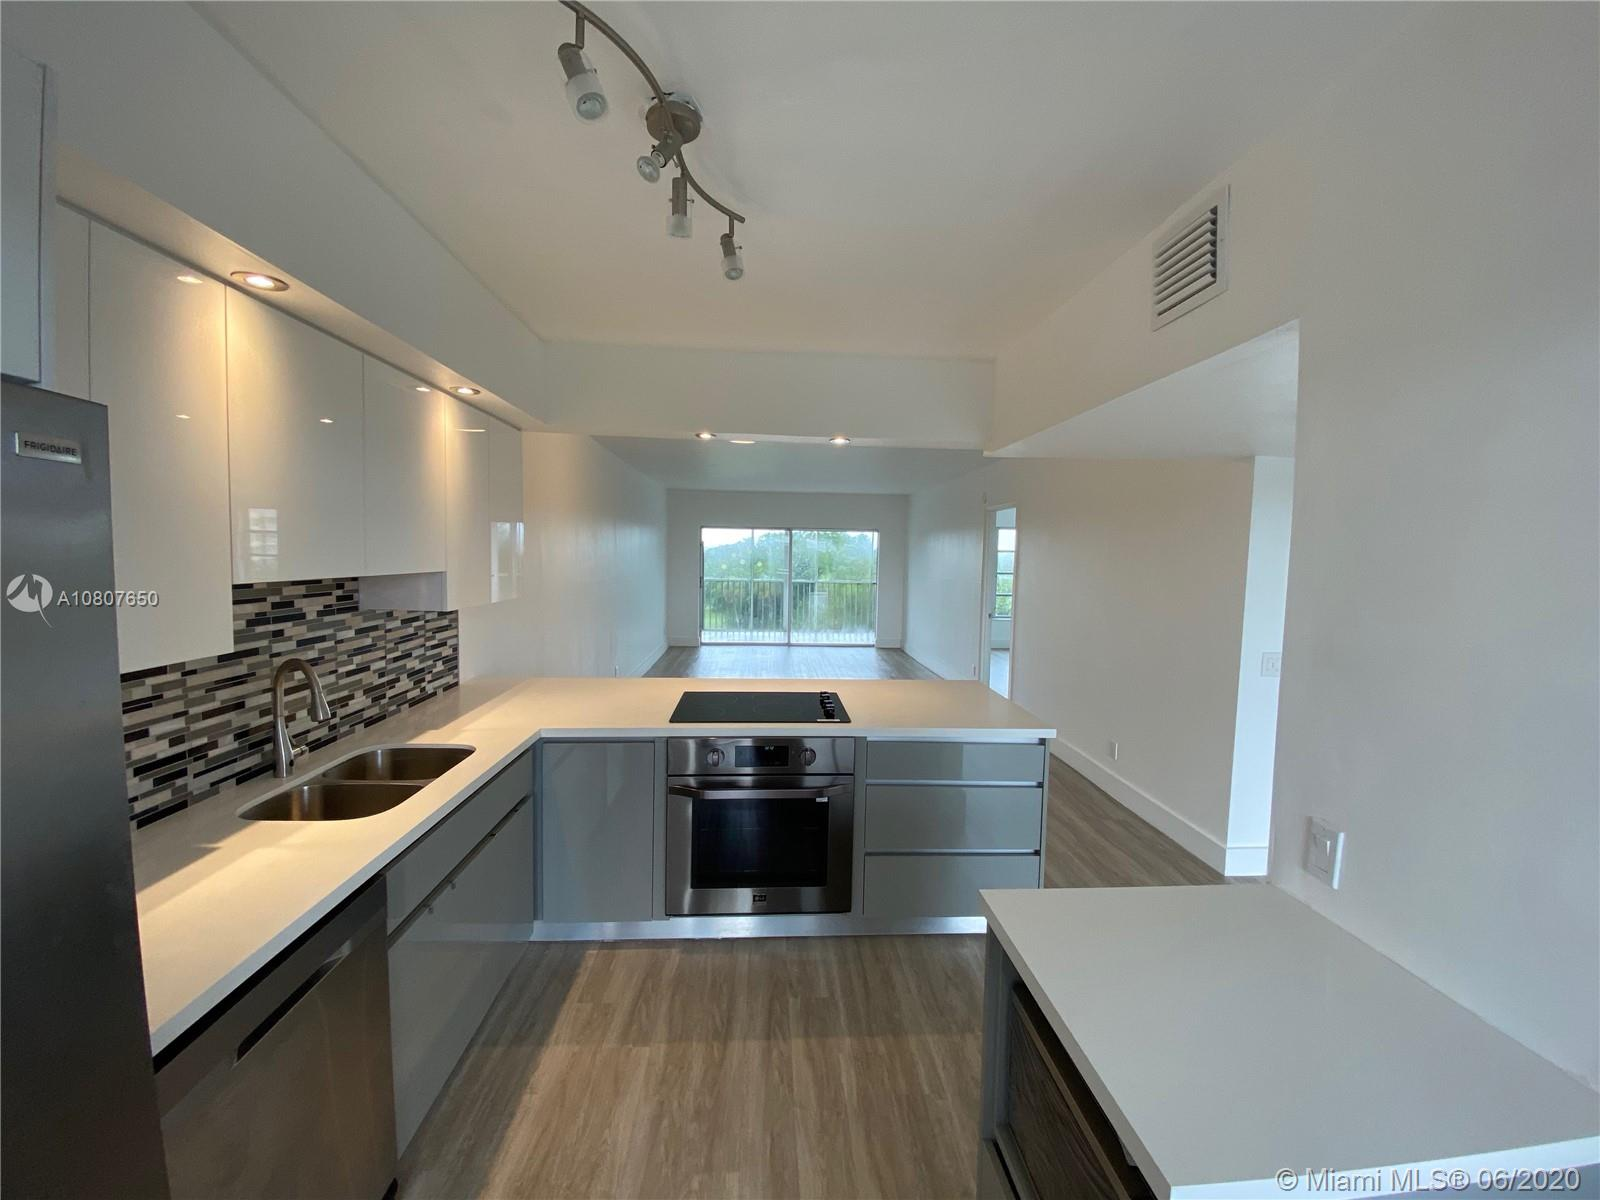 Beautiful apartment completely remodeled; floors, bathrooms, kitchen, new appliances, with 54 holes of golf within a 3 mile radius. Pool and social area is located next to the building.